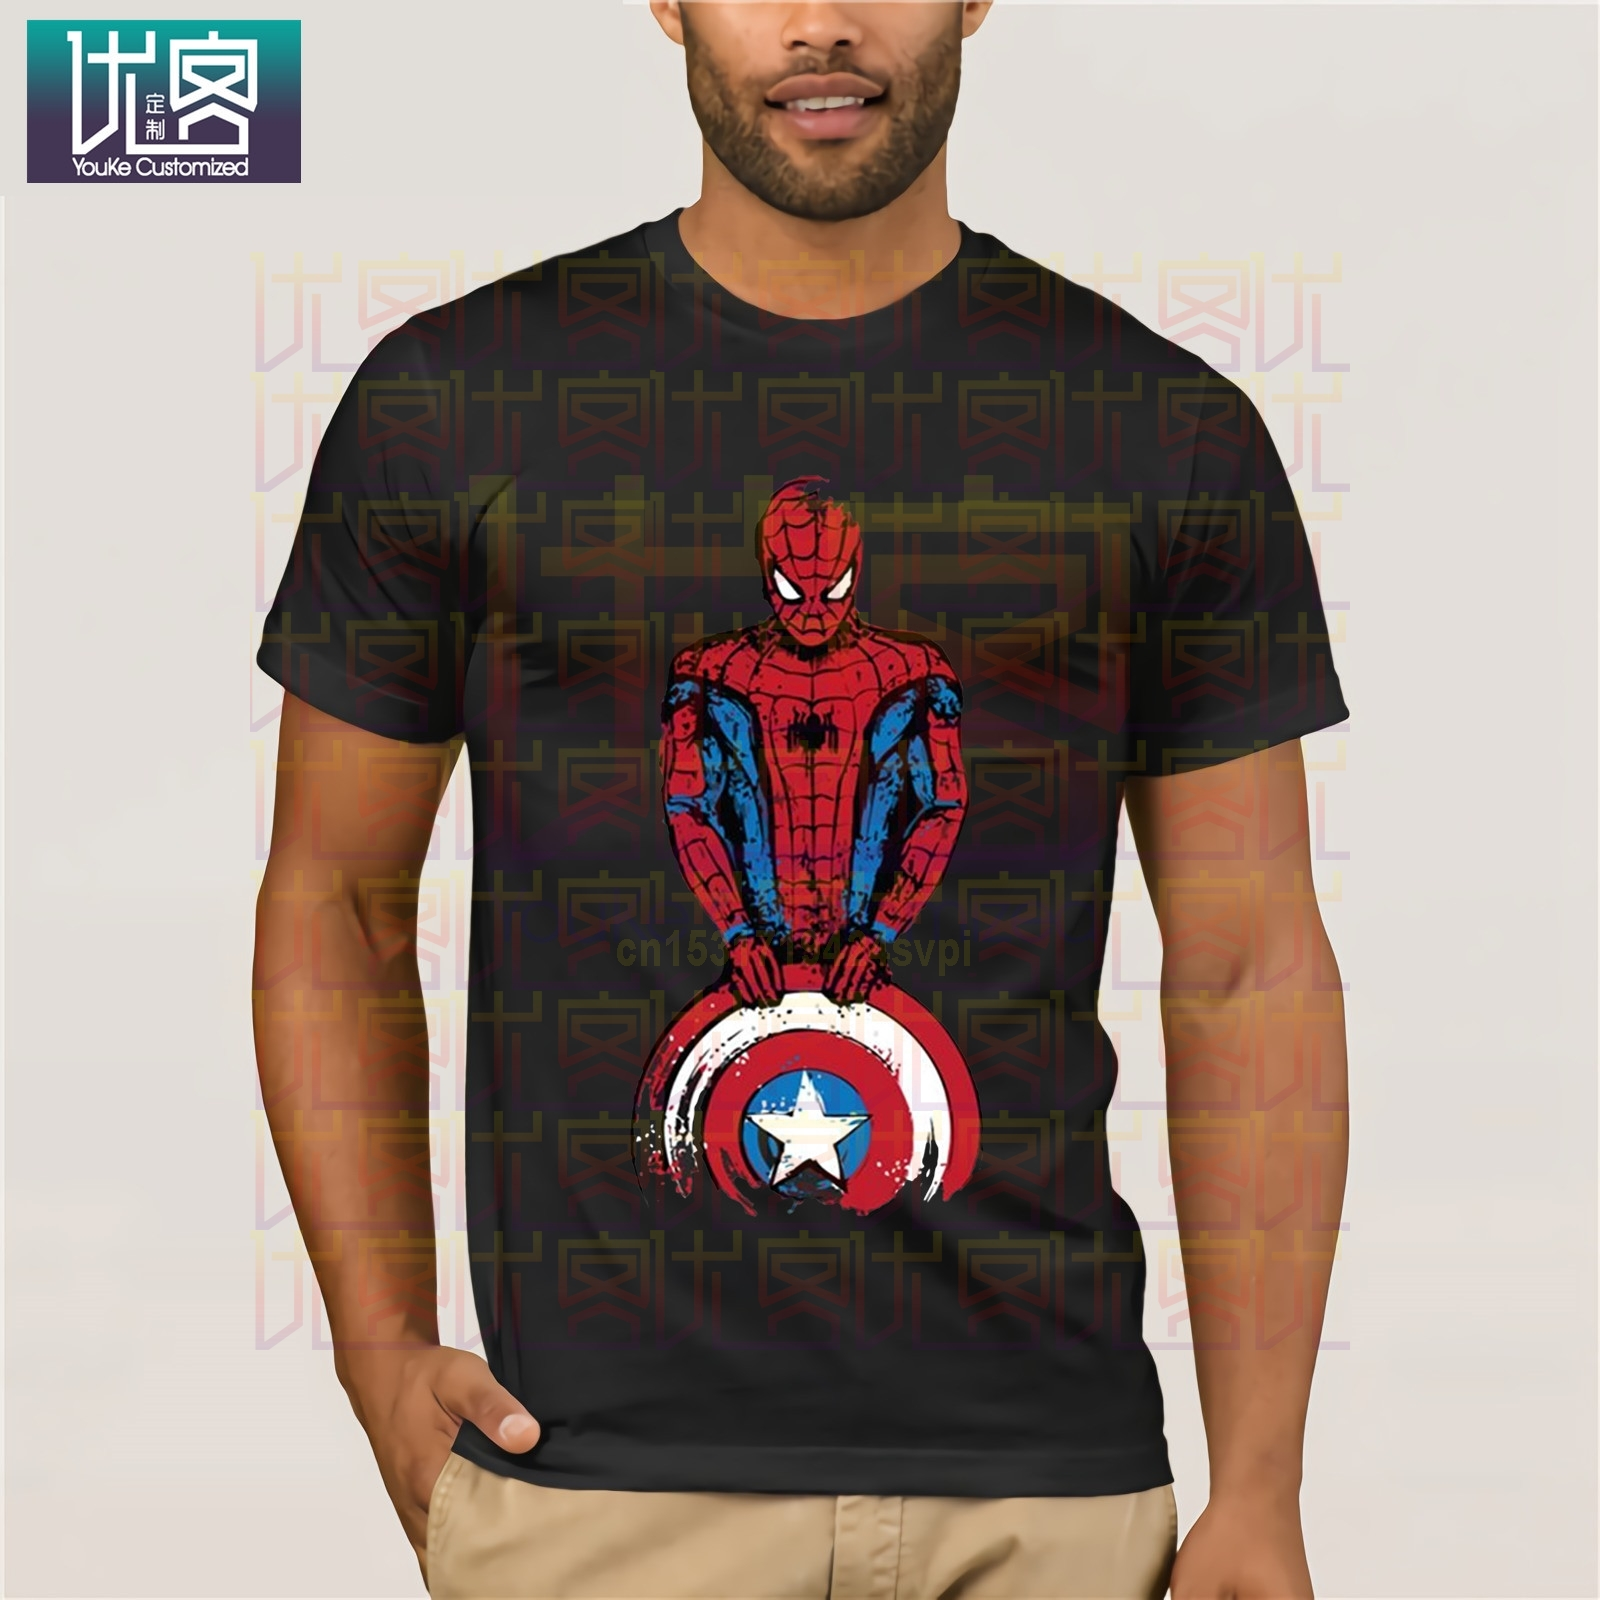 gildan-100-cotton-o-neck-customised-t-shirt-men-the-spider-is-coming-captain-spiderman-funny-marvel-font-b-avengers-b-font-design-tee-shirt